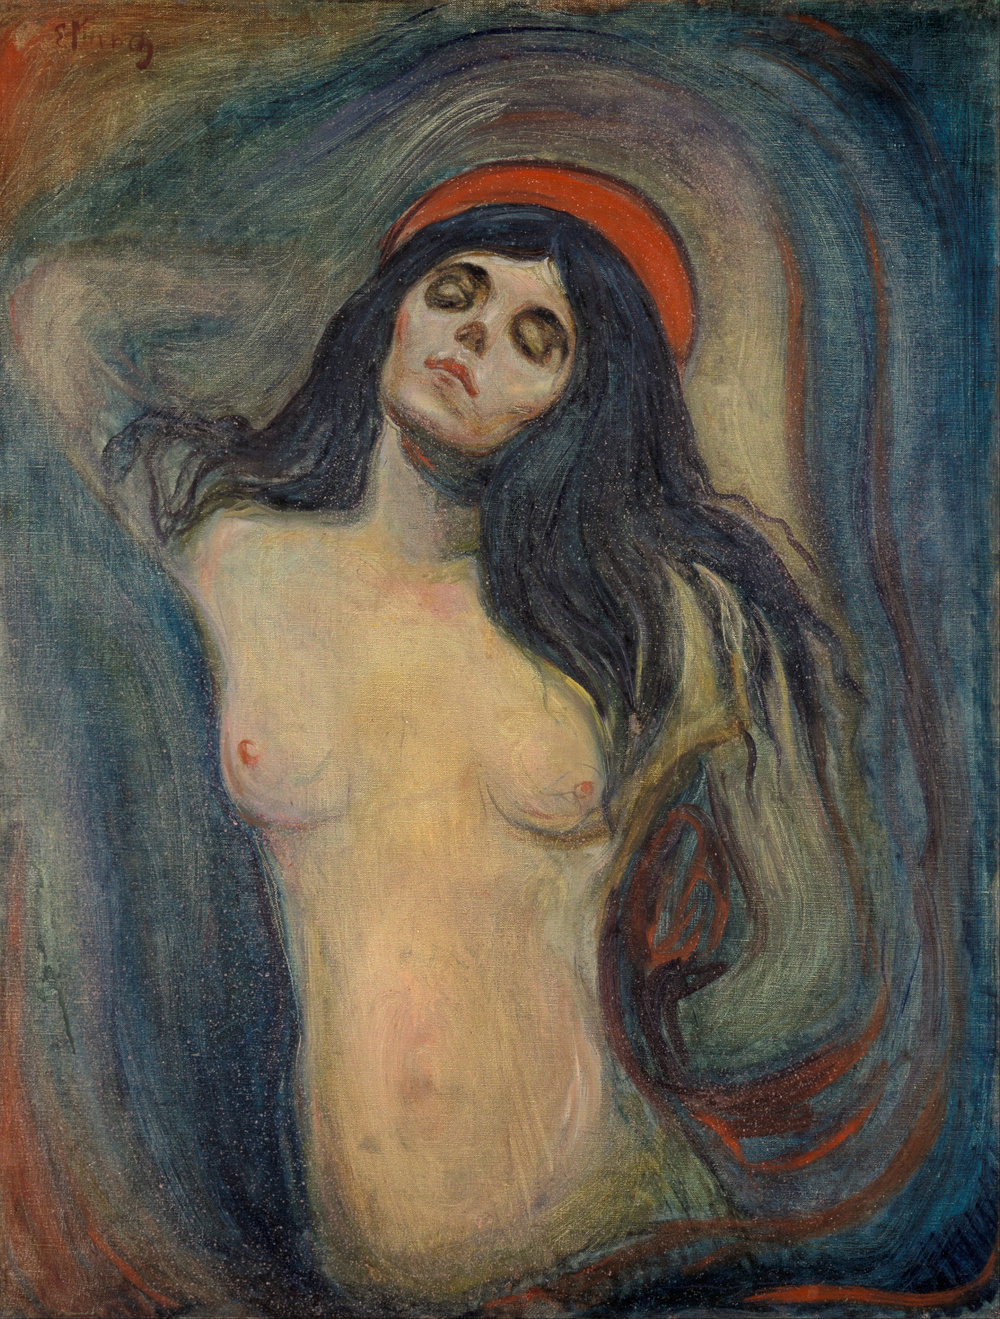 Edvard_Munch_-_Madonna_-_Google_Art_Project.jpg